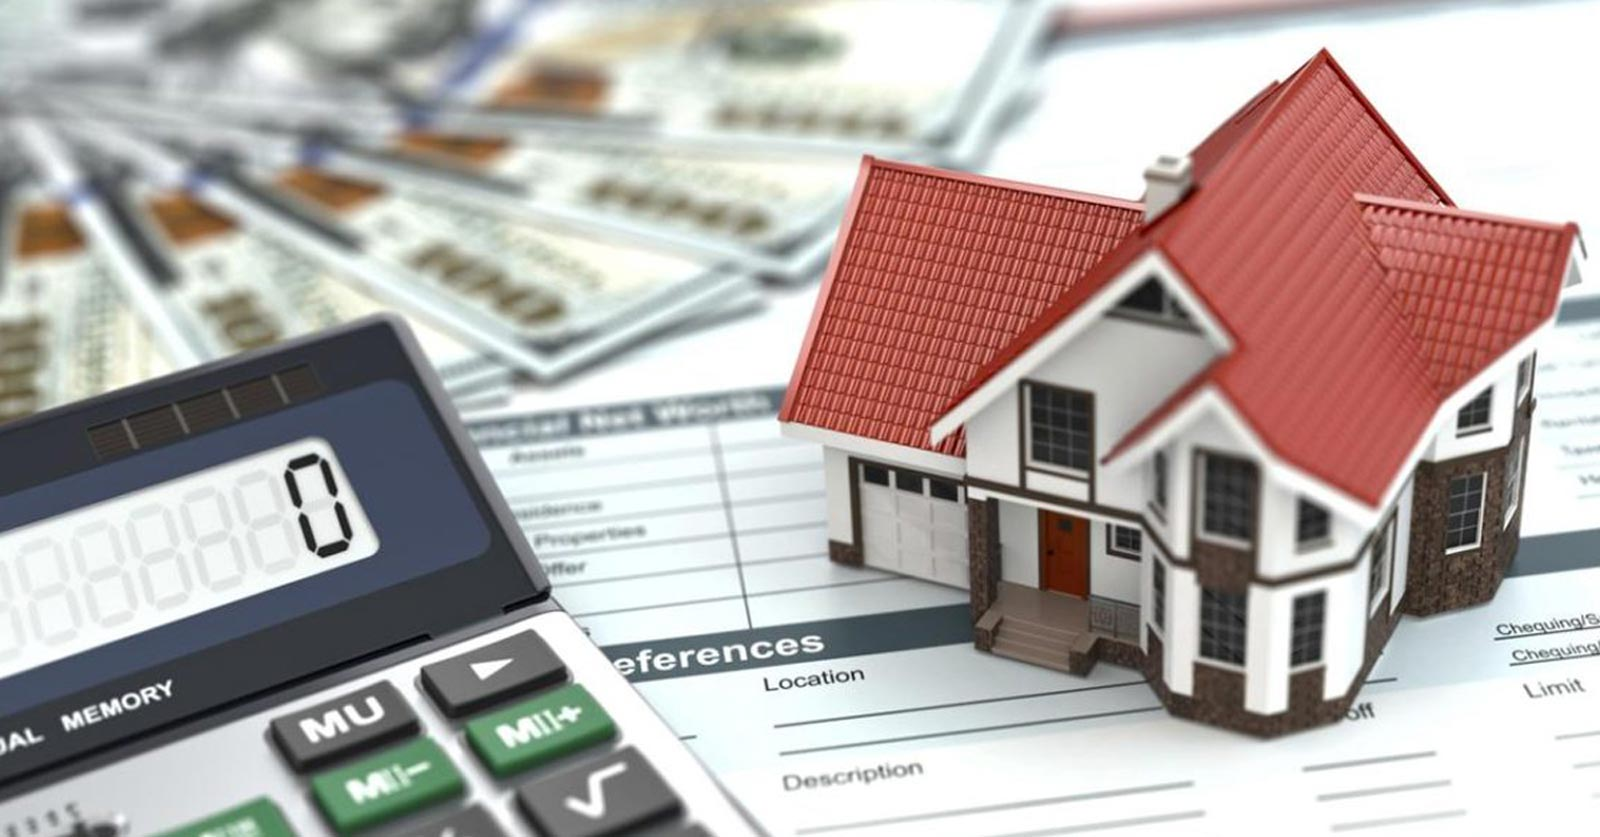 What Do You Know About Mortgage Fraud?